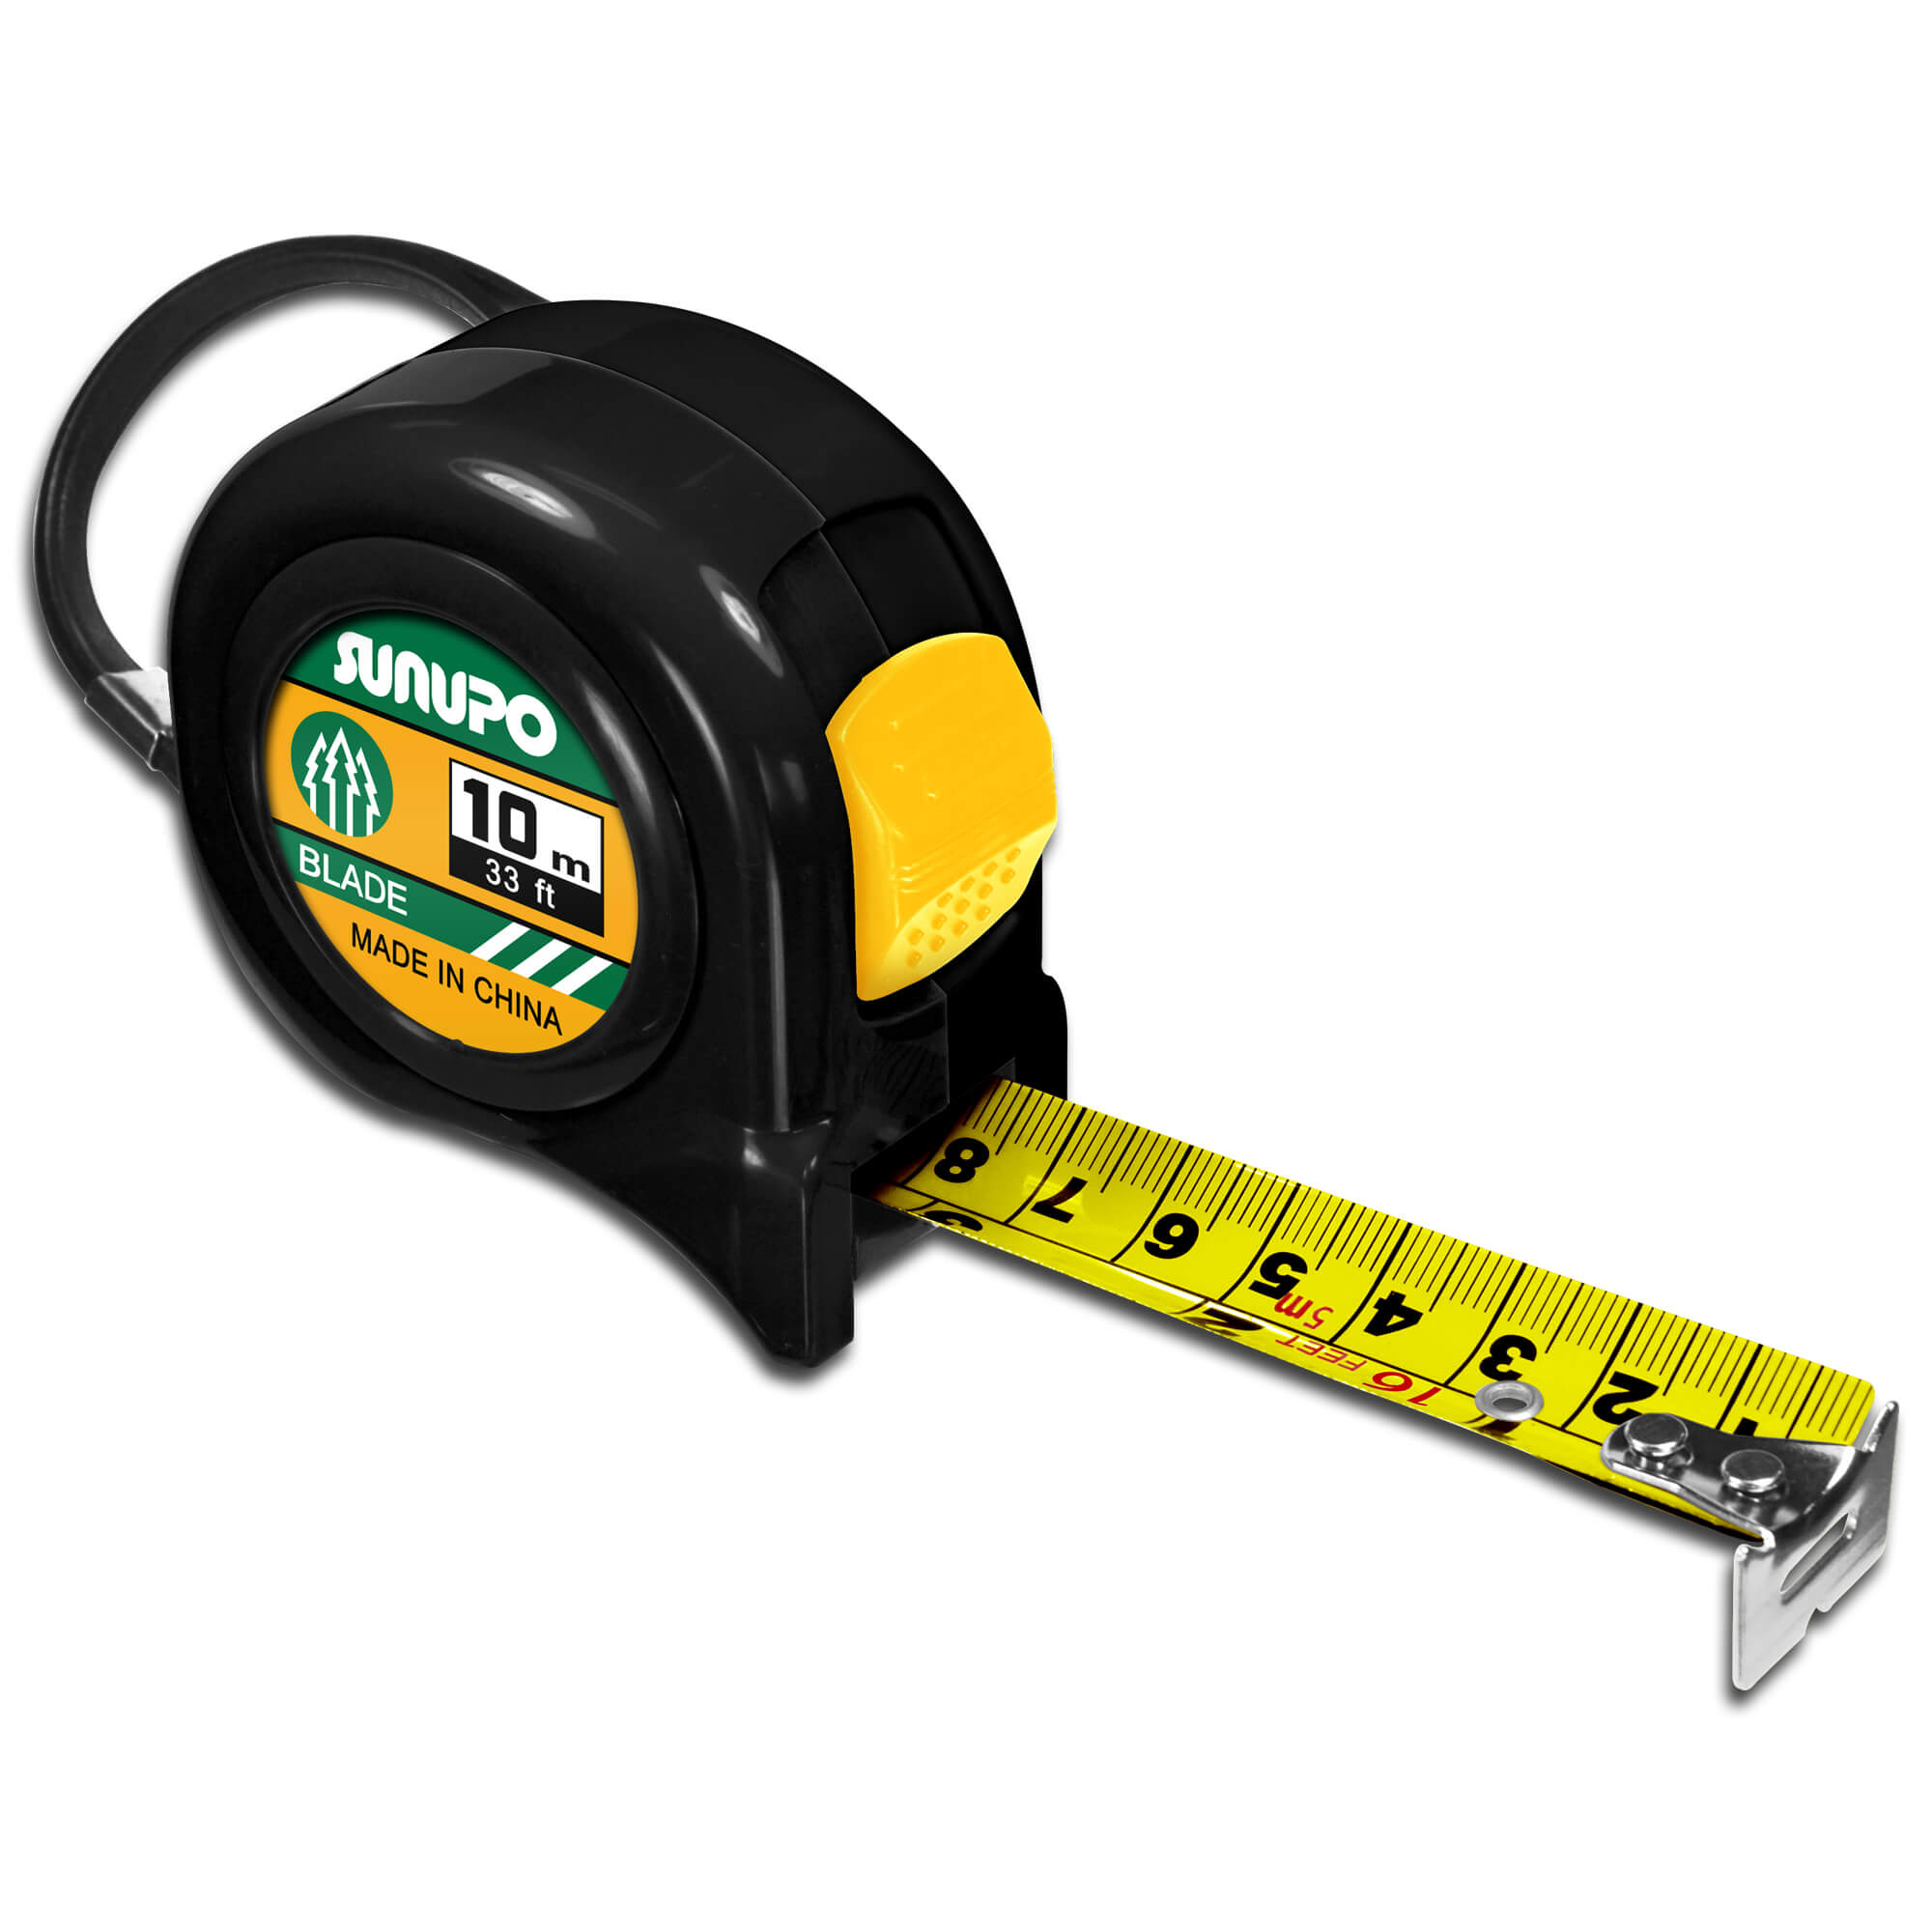 how to measure, reading a measuring tape, tape measure,DTA